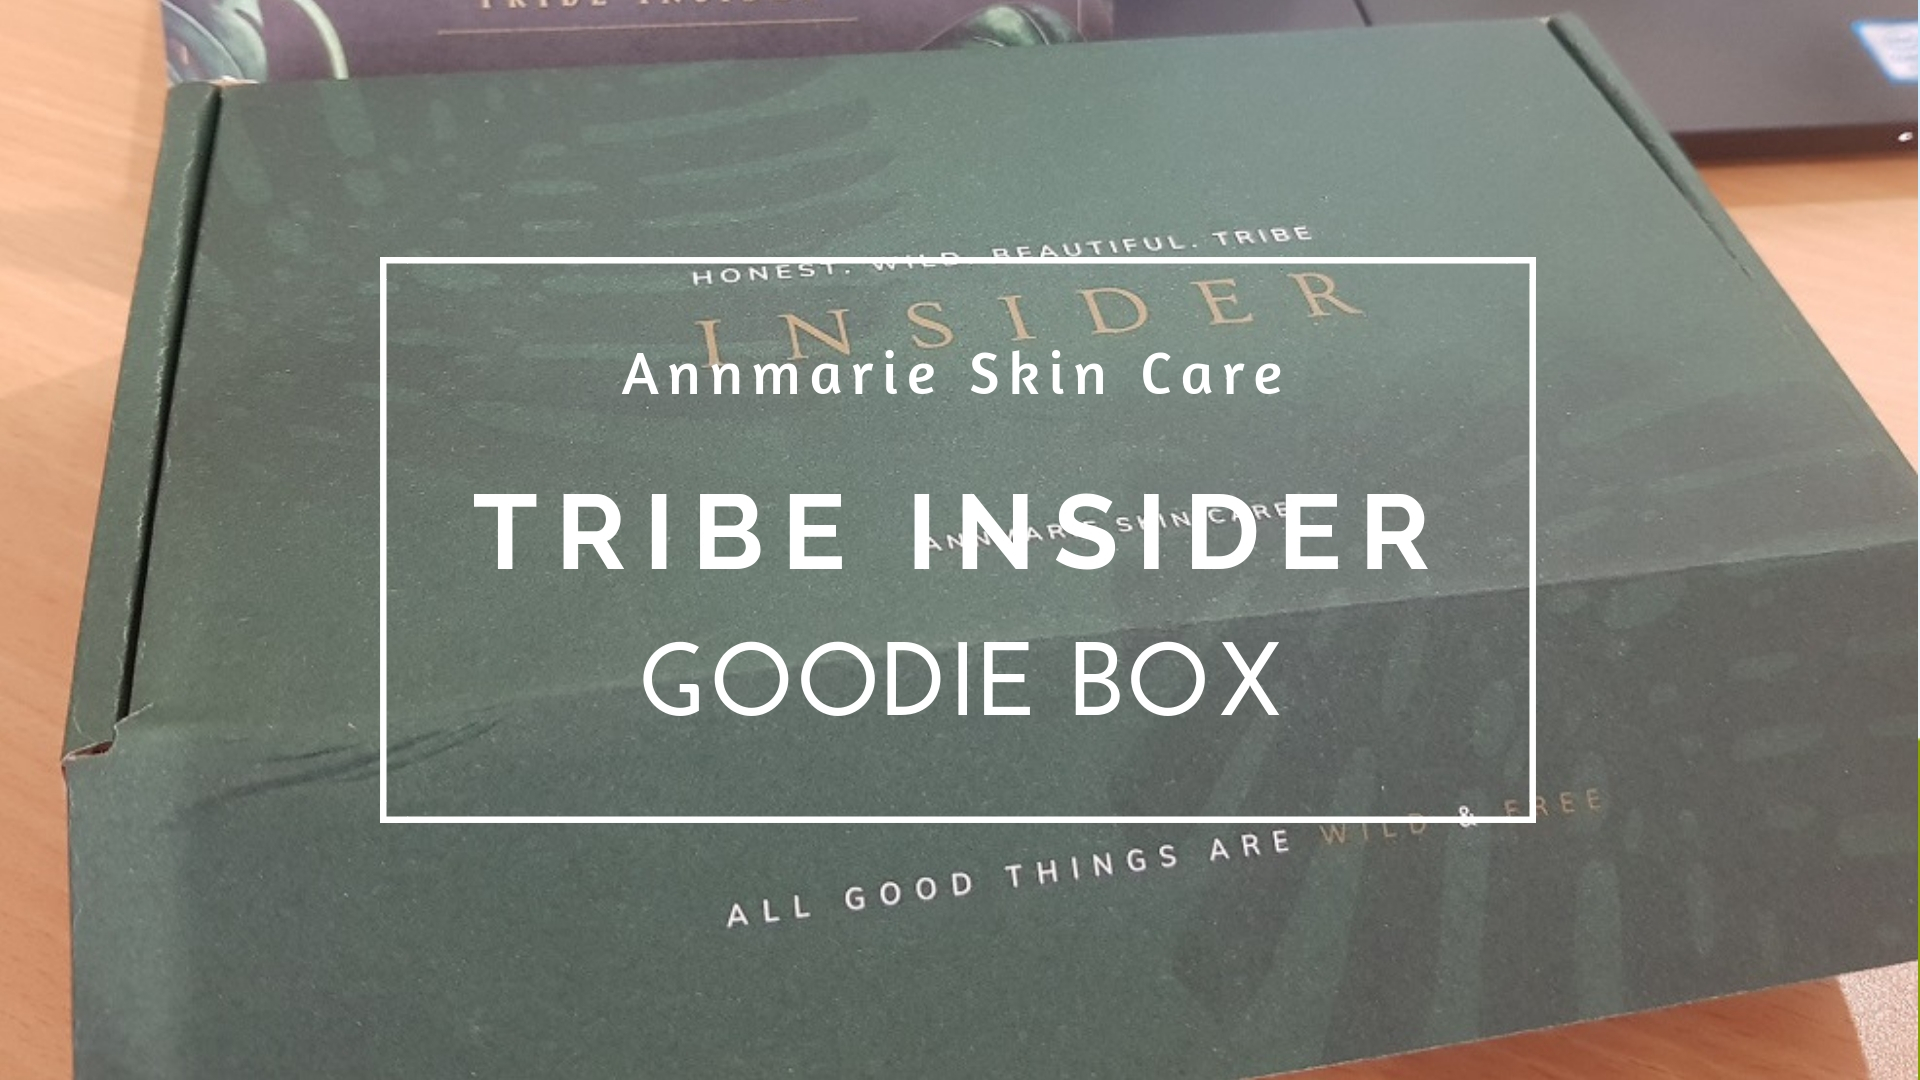 Annmarie Skin Care Tribe Insider Goodie Box